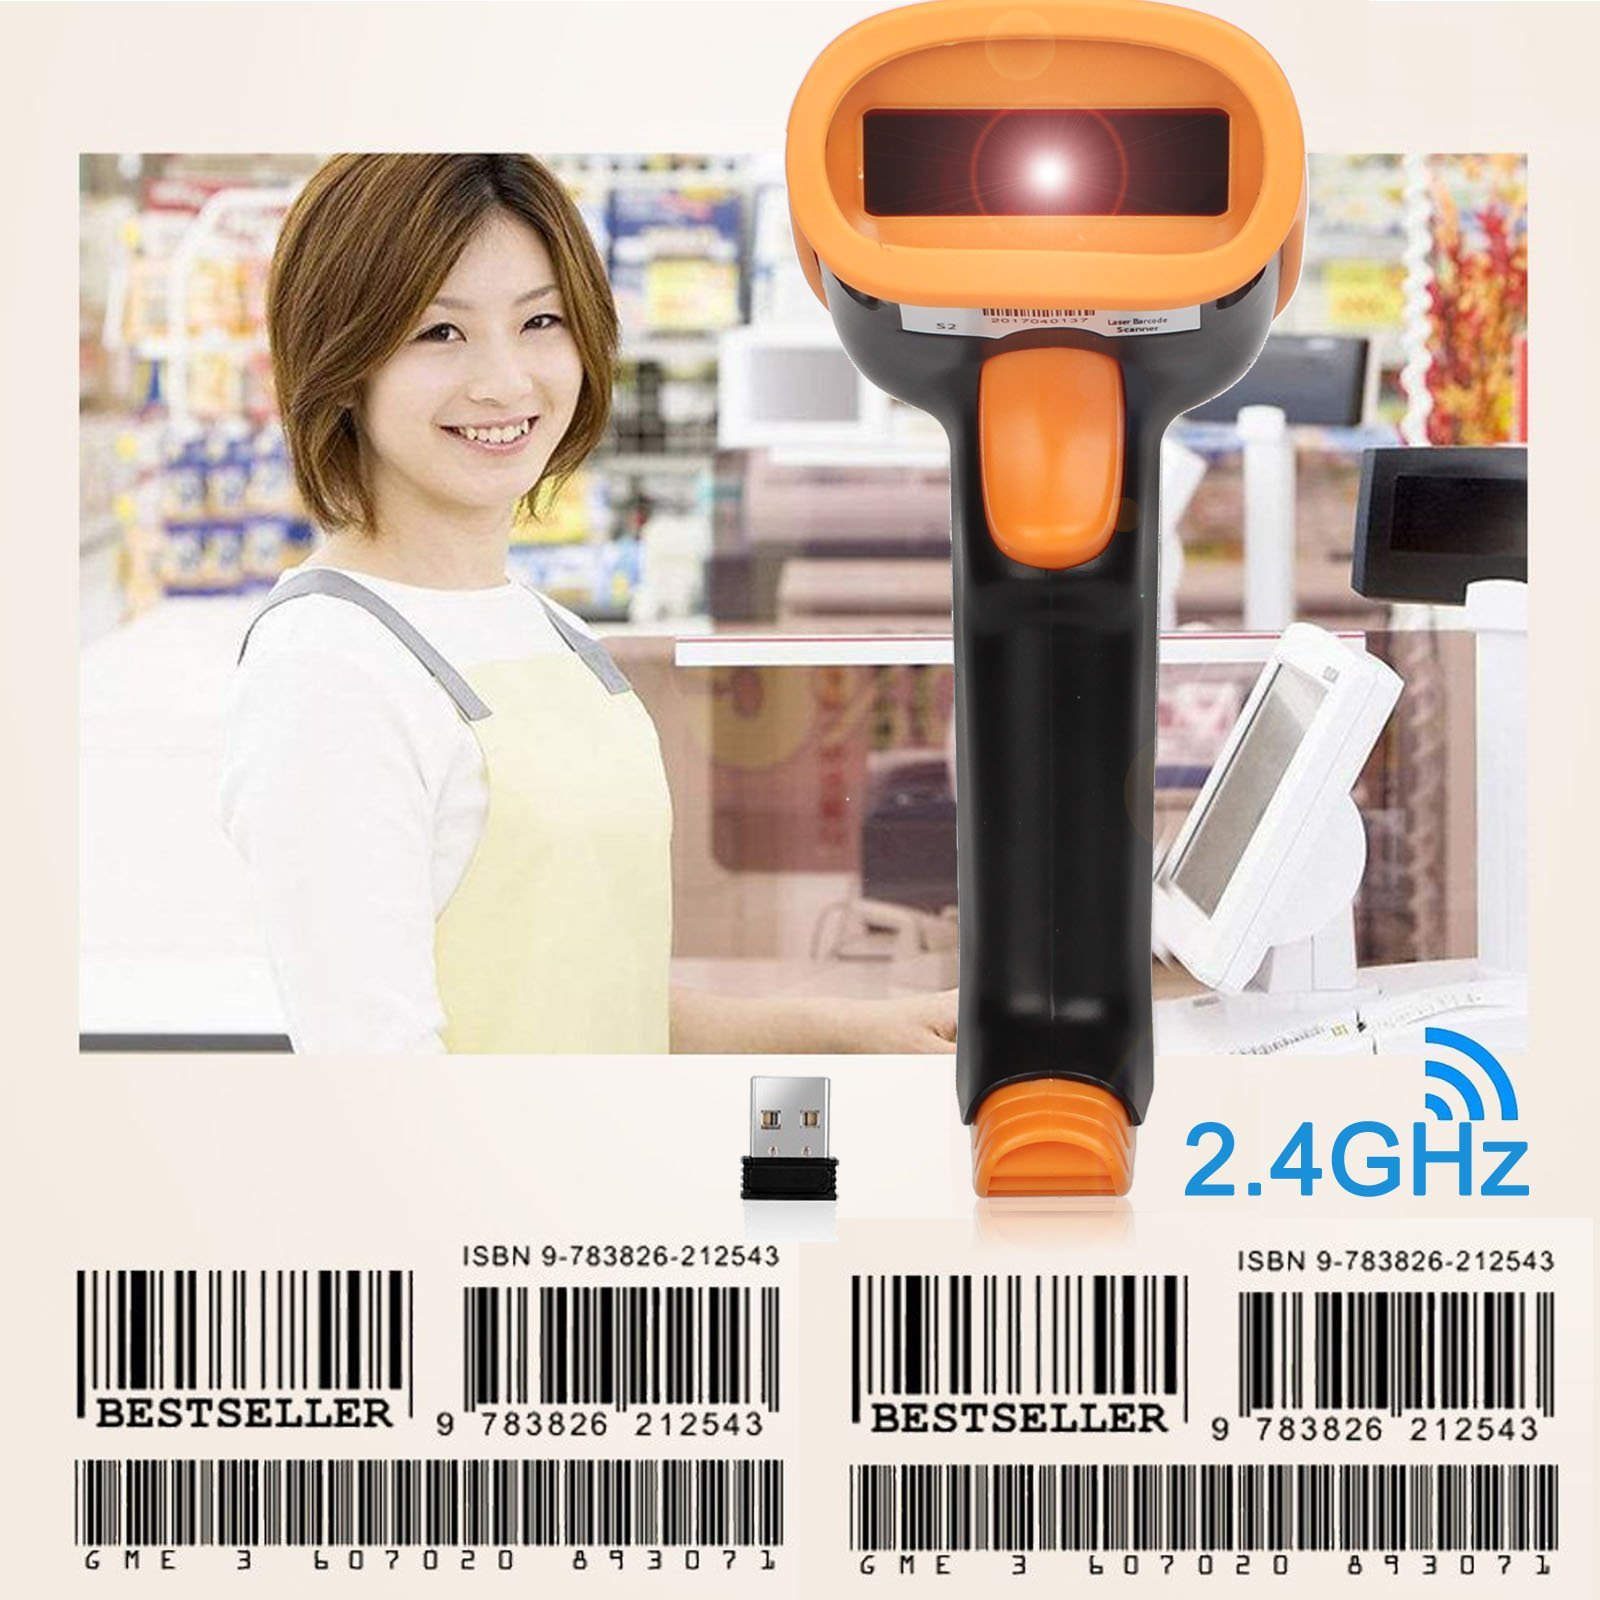 1D 2.4GHz Wireless Barcode Scanner, Portable 2.4GHz Wireless & USB2.0 Wired Barcode Reader with USB Receiver Cable for Supermarket Library Express Company Retail Store Warehouse (New)